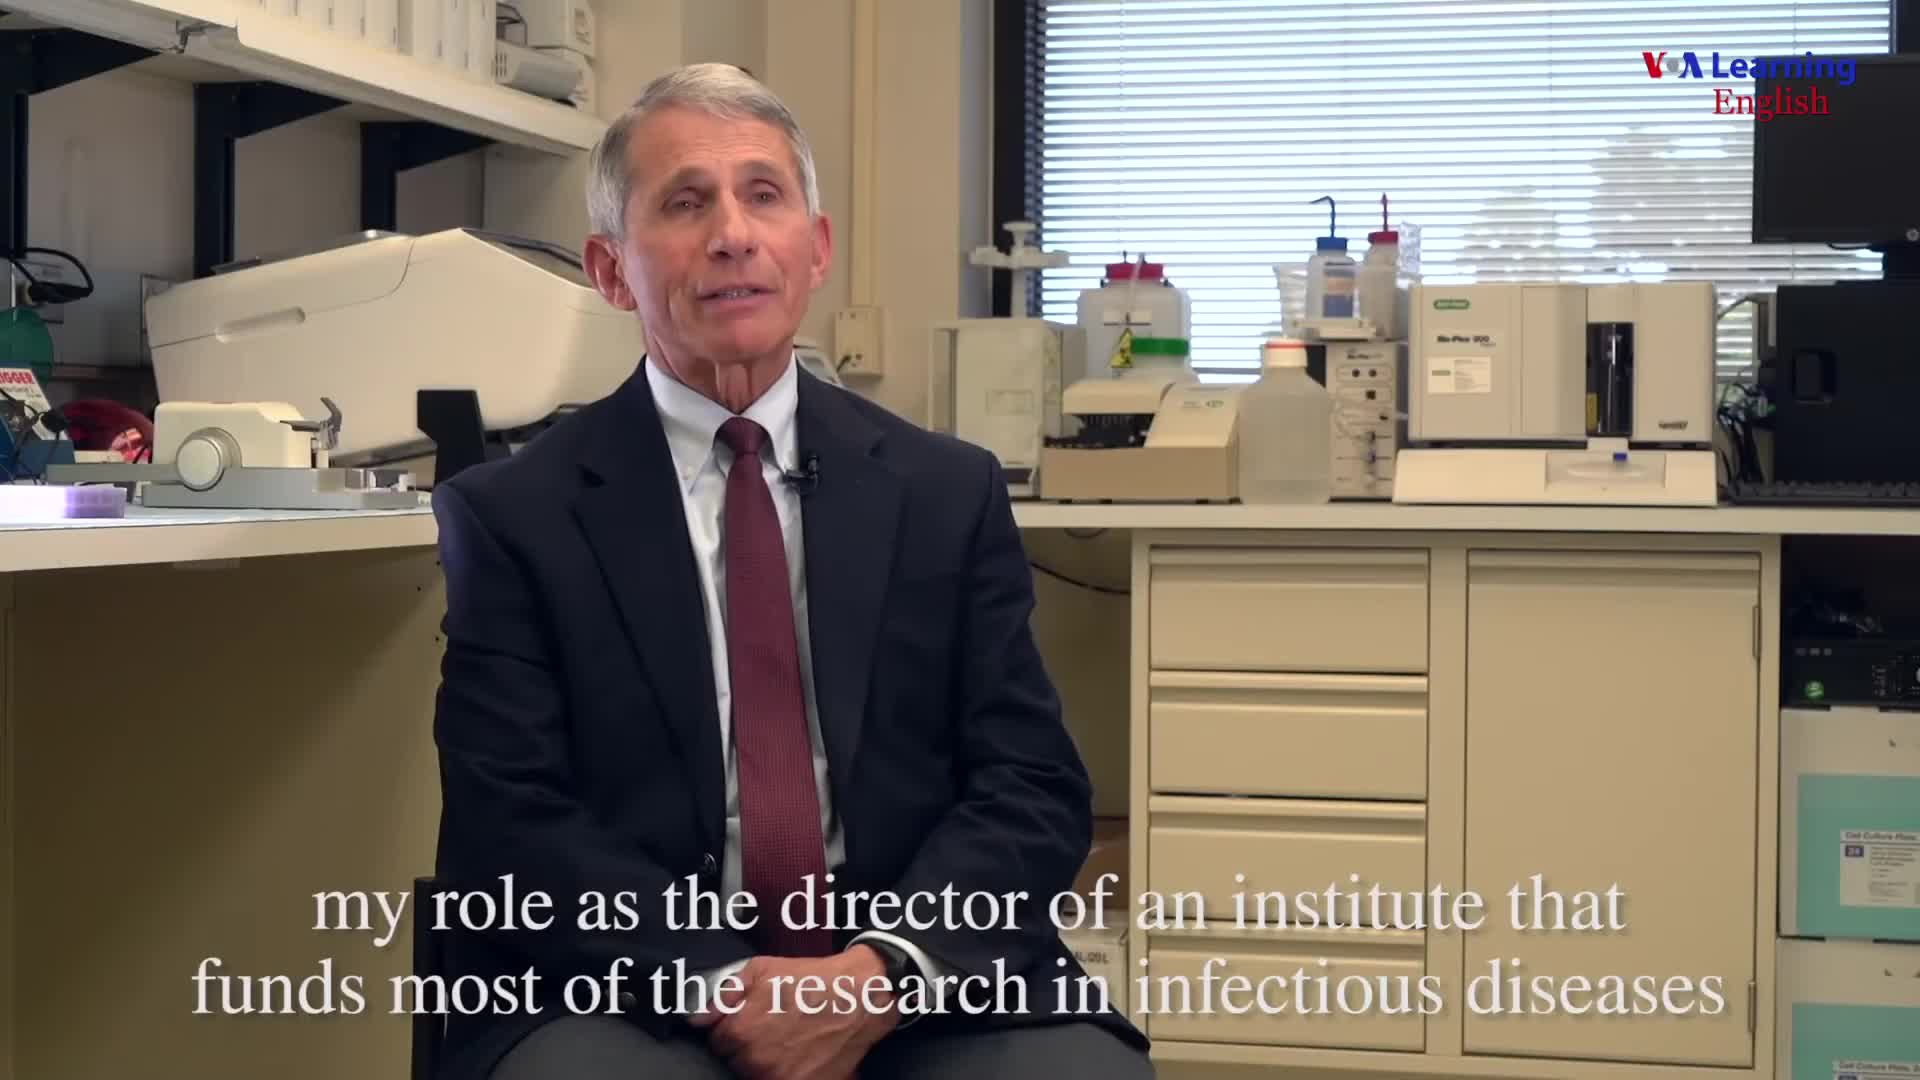 Fauci: Americans Shouldn't Stop Wearing Masks, Social Distancing Even After Being Vaccinated